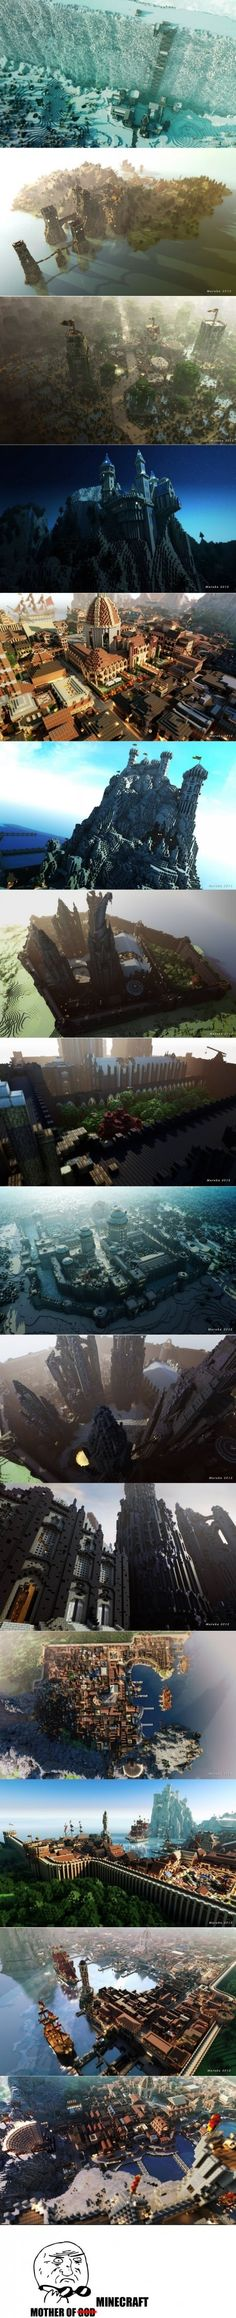 Game of Thrones Minecraft... its the dorkiest thing I have ever seen.